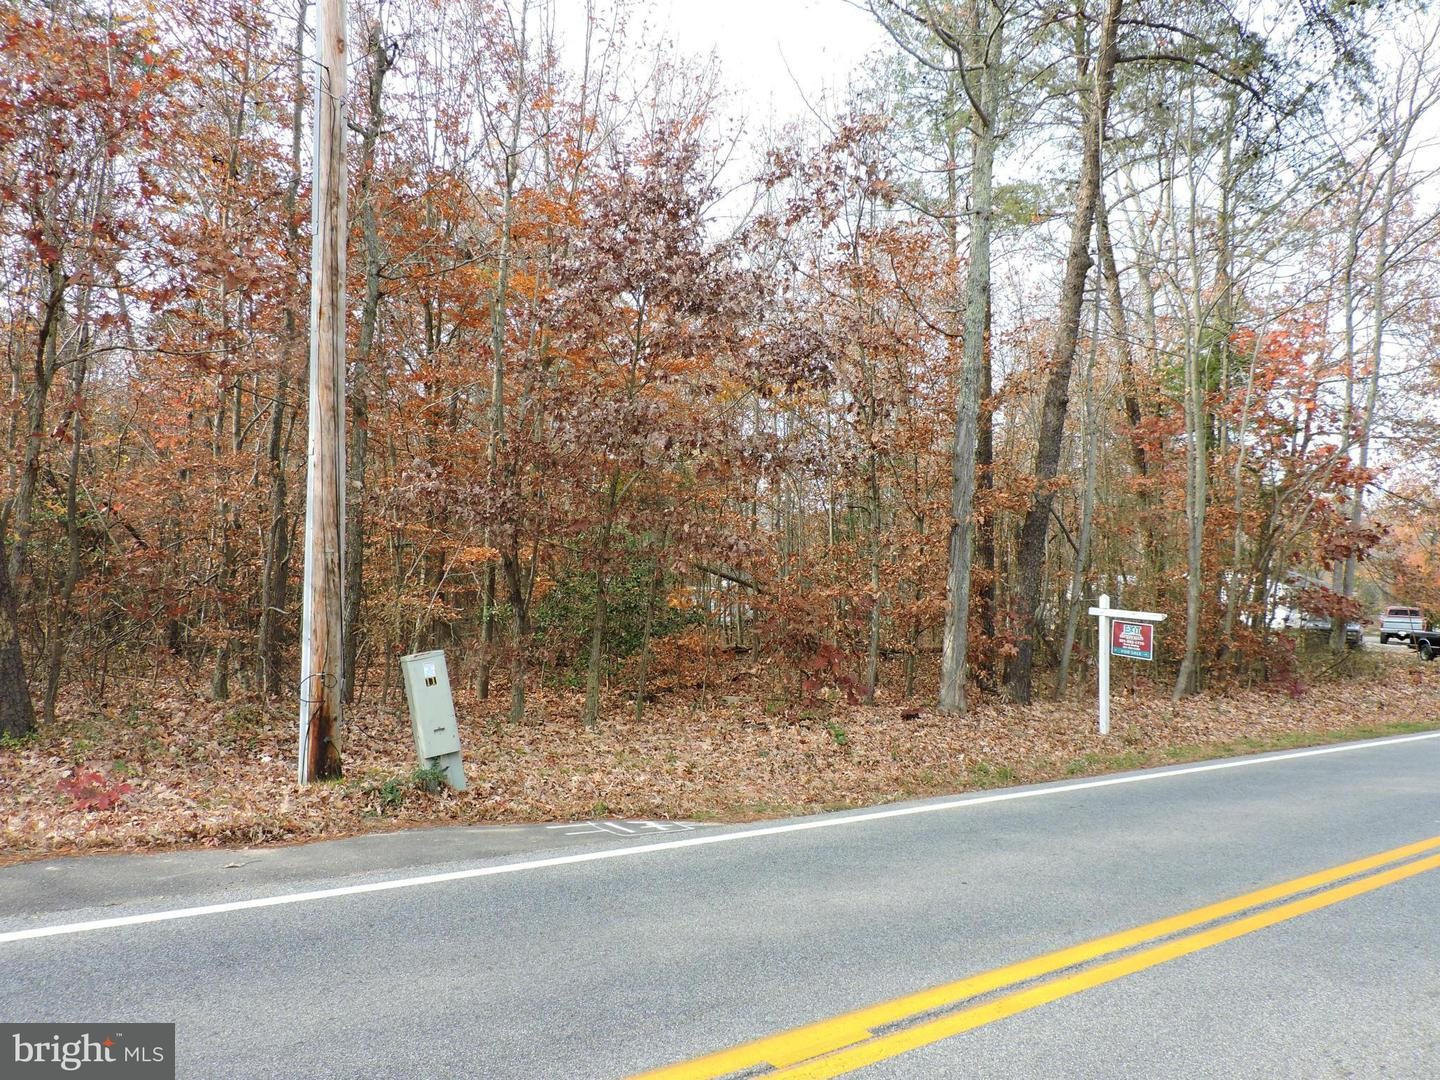 Additional photo for property listing at 0 Bumpy Oak Rd  Indian Head, Maryland 20640 United States